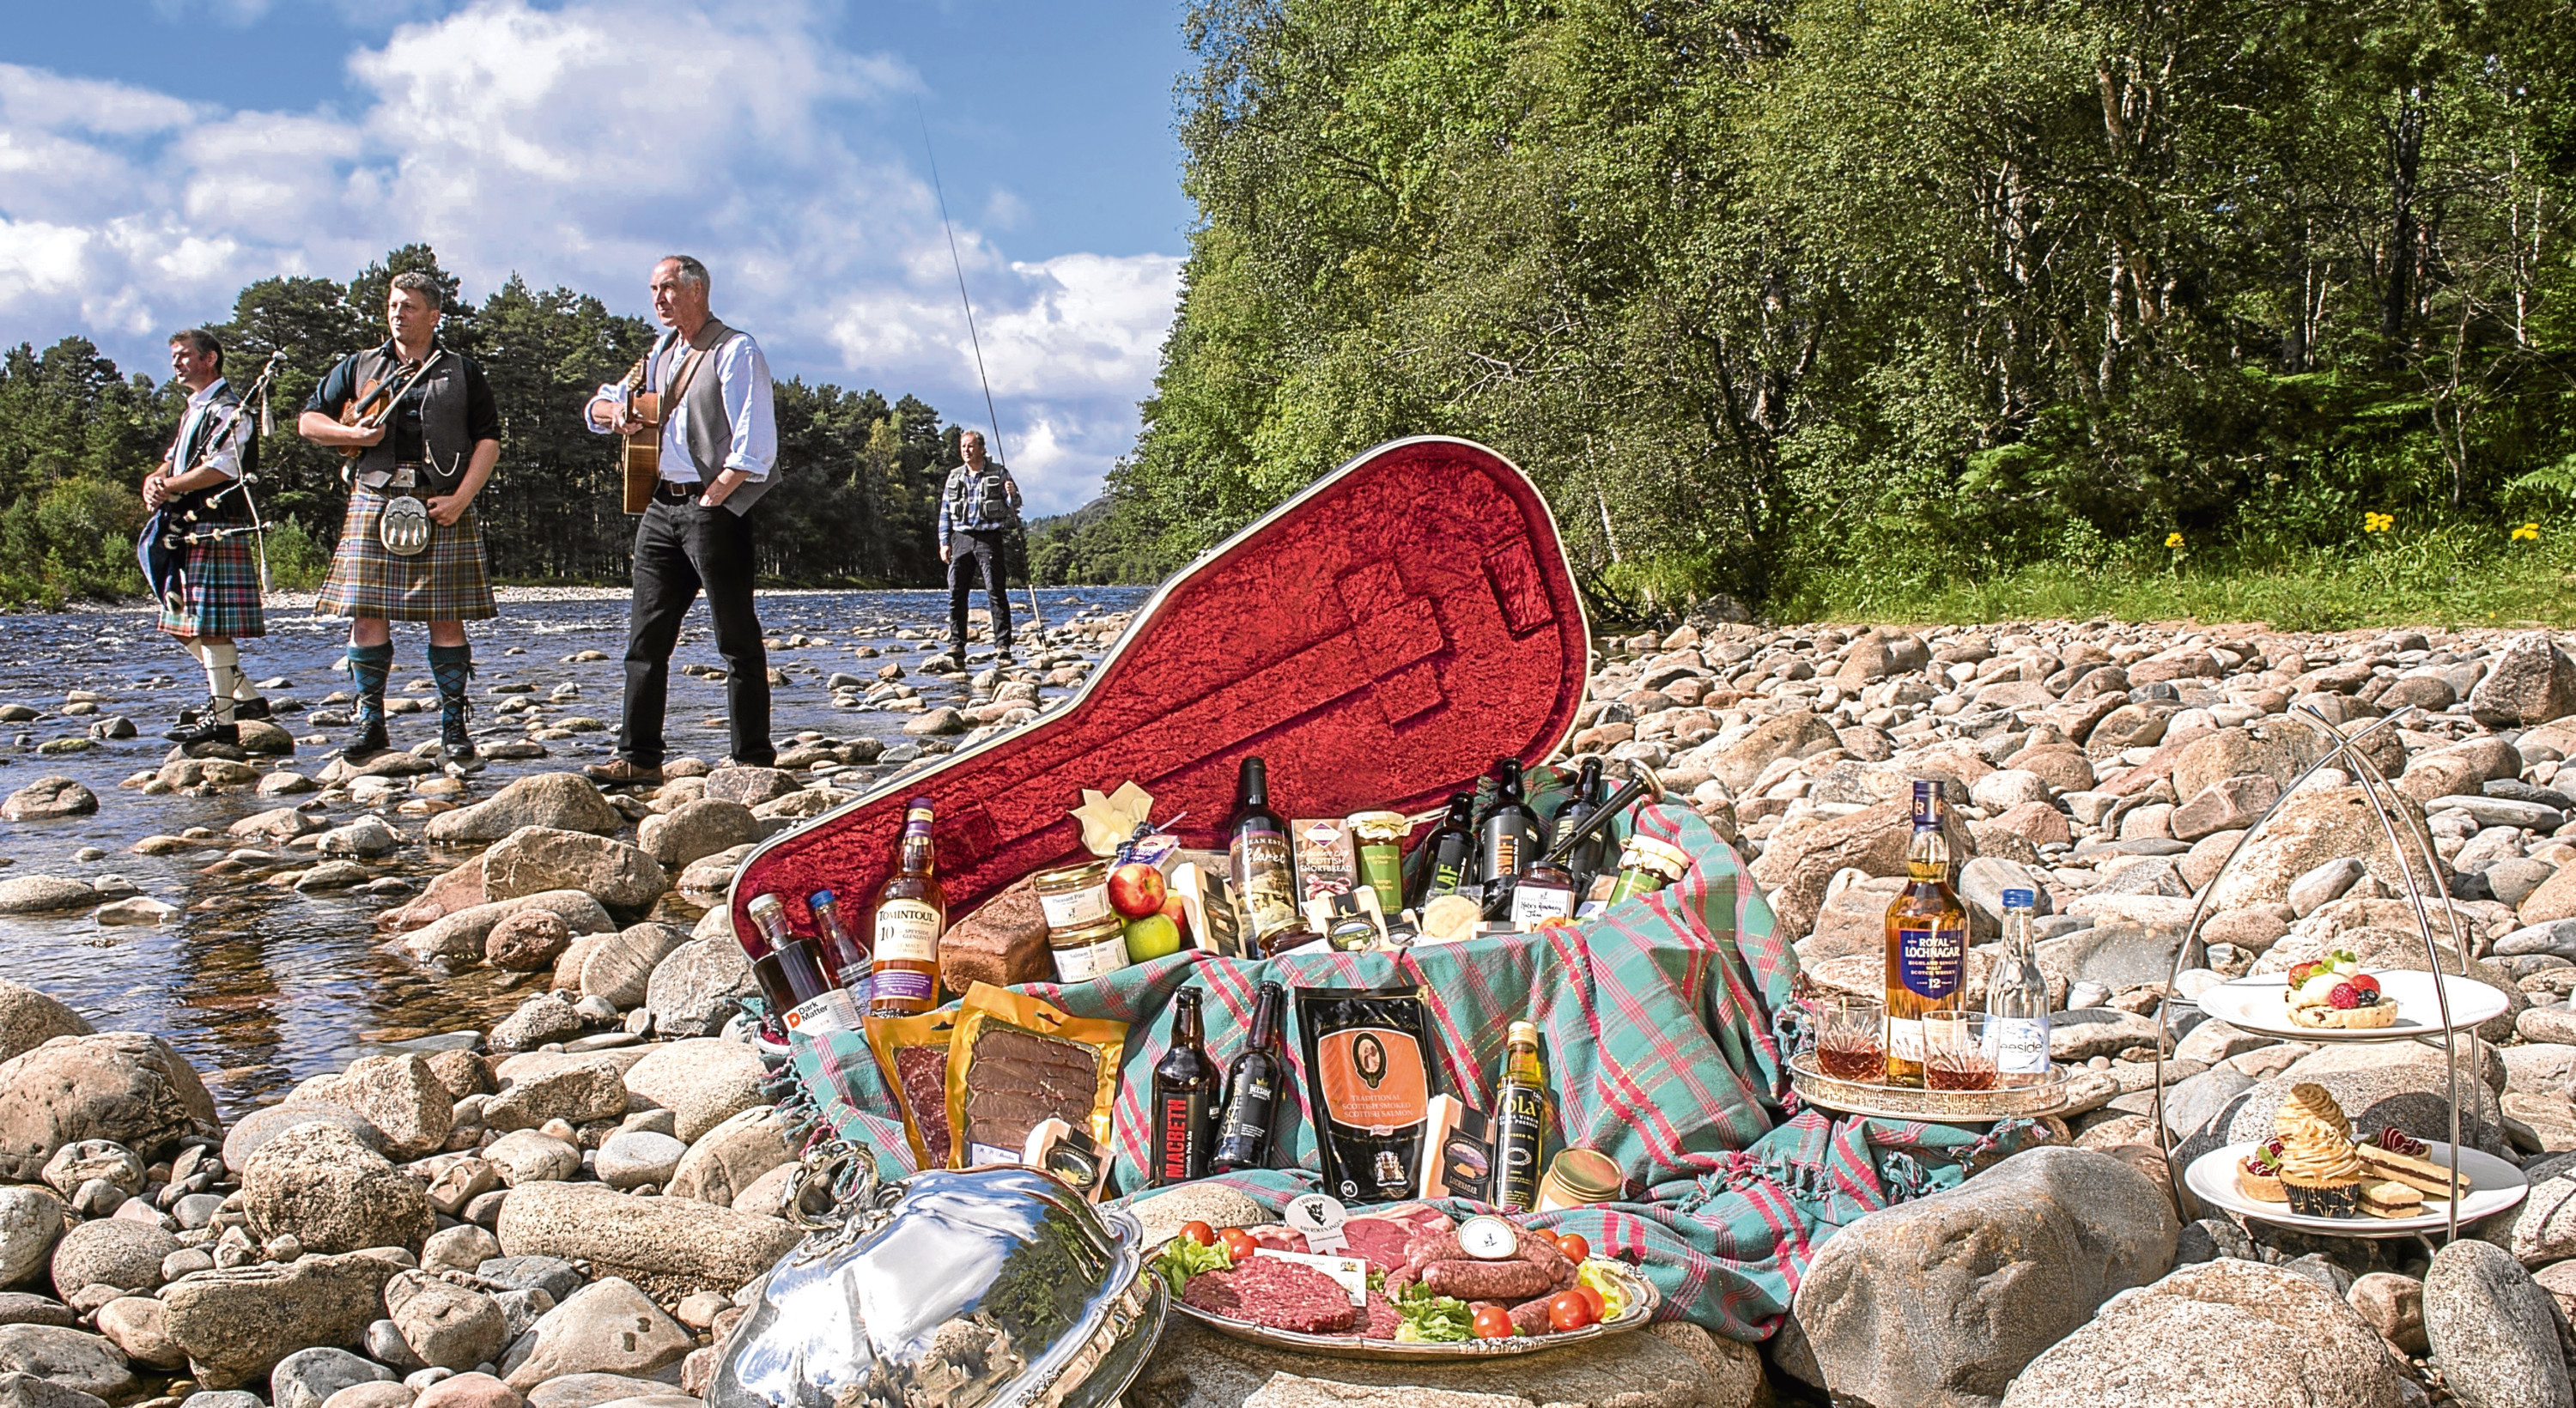 Scotland's produce, including alcohol and meat, has won much acclaim.